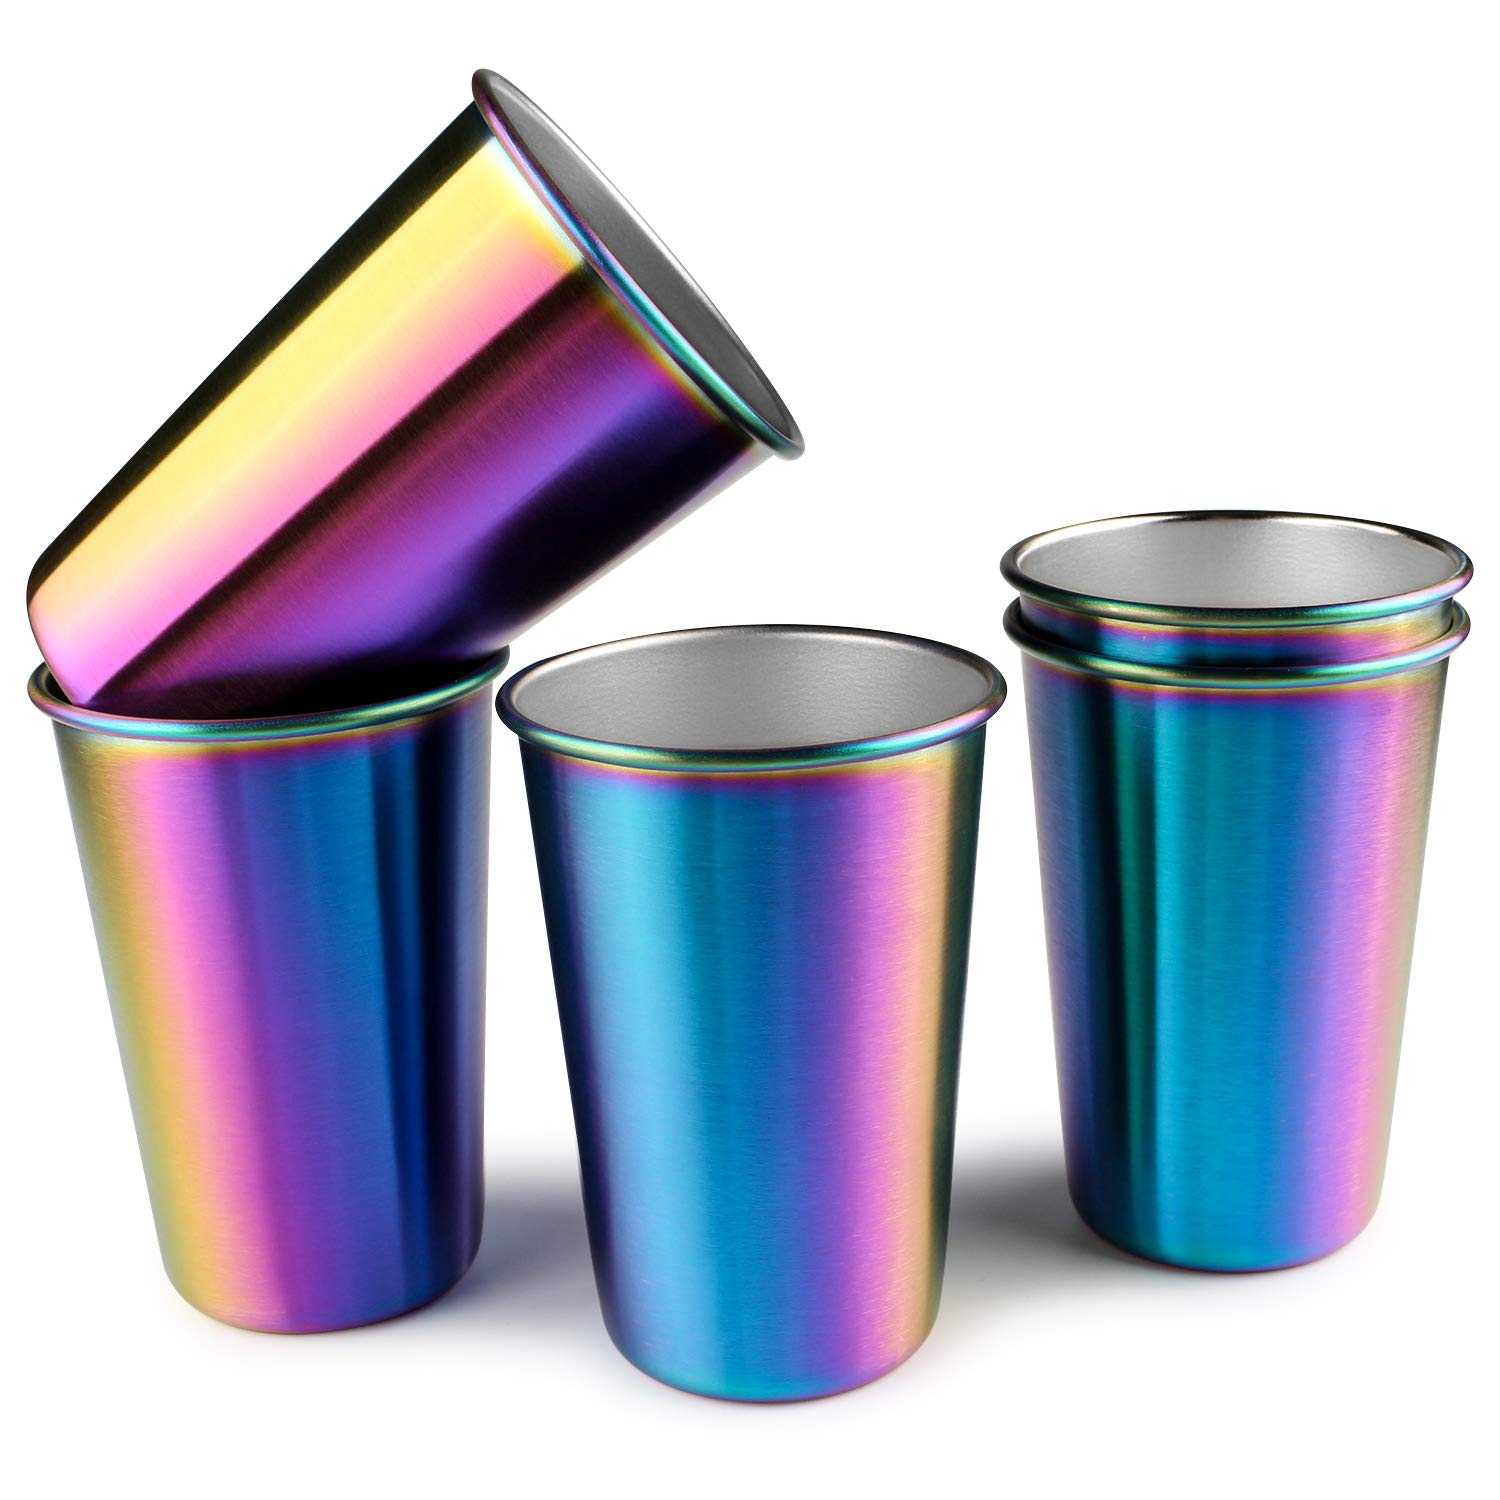 Rainbow Party Cups, Kereda Stainless Steel Cups 16oz 5-Pack Premium Drinking Glasses Unbreakable Colorful Tumblers BPA Free Eco Friendly by KEREDA (Image #8)